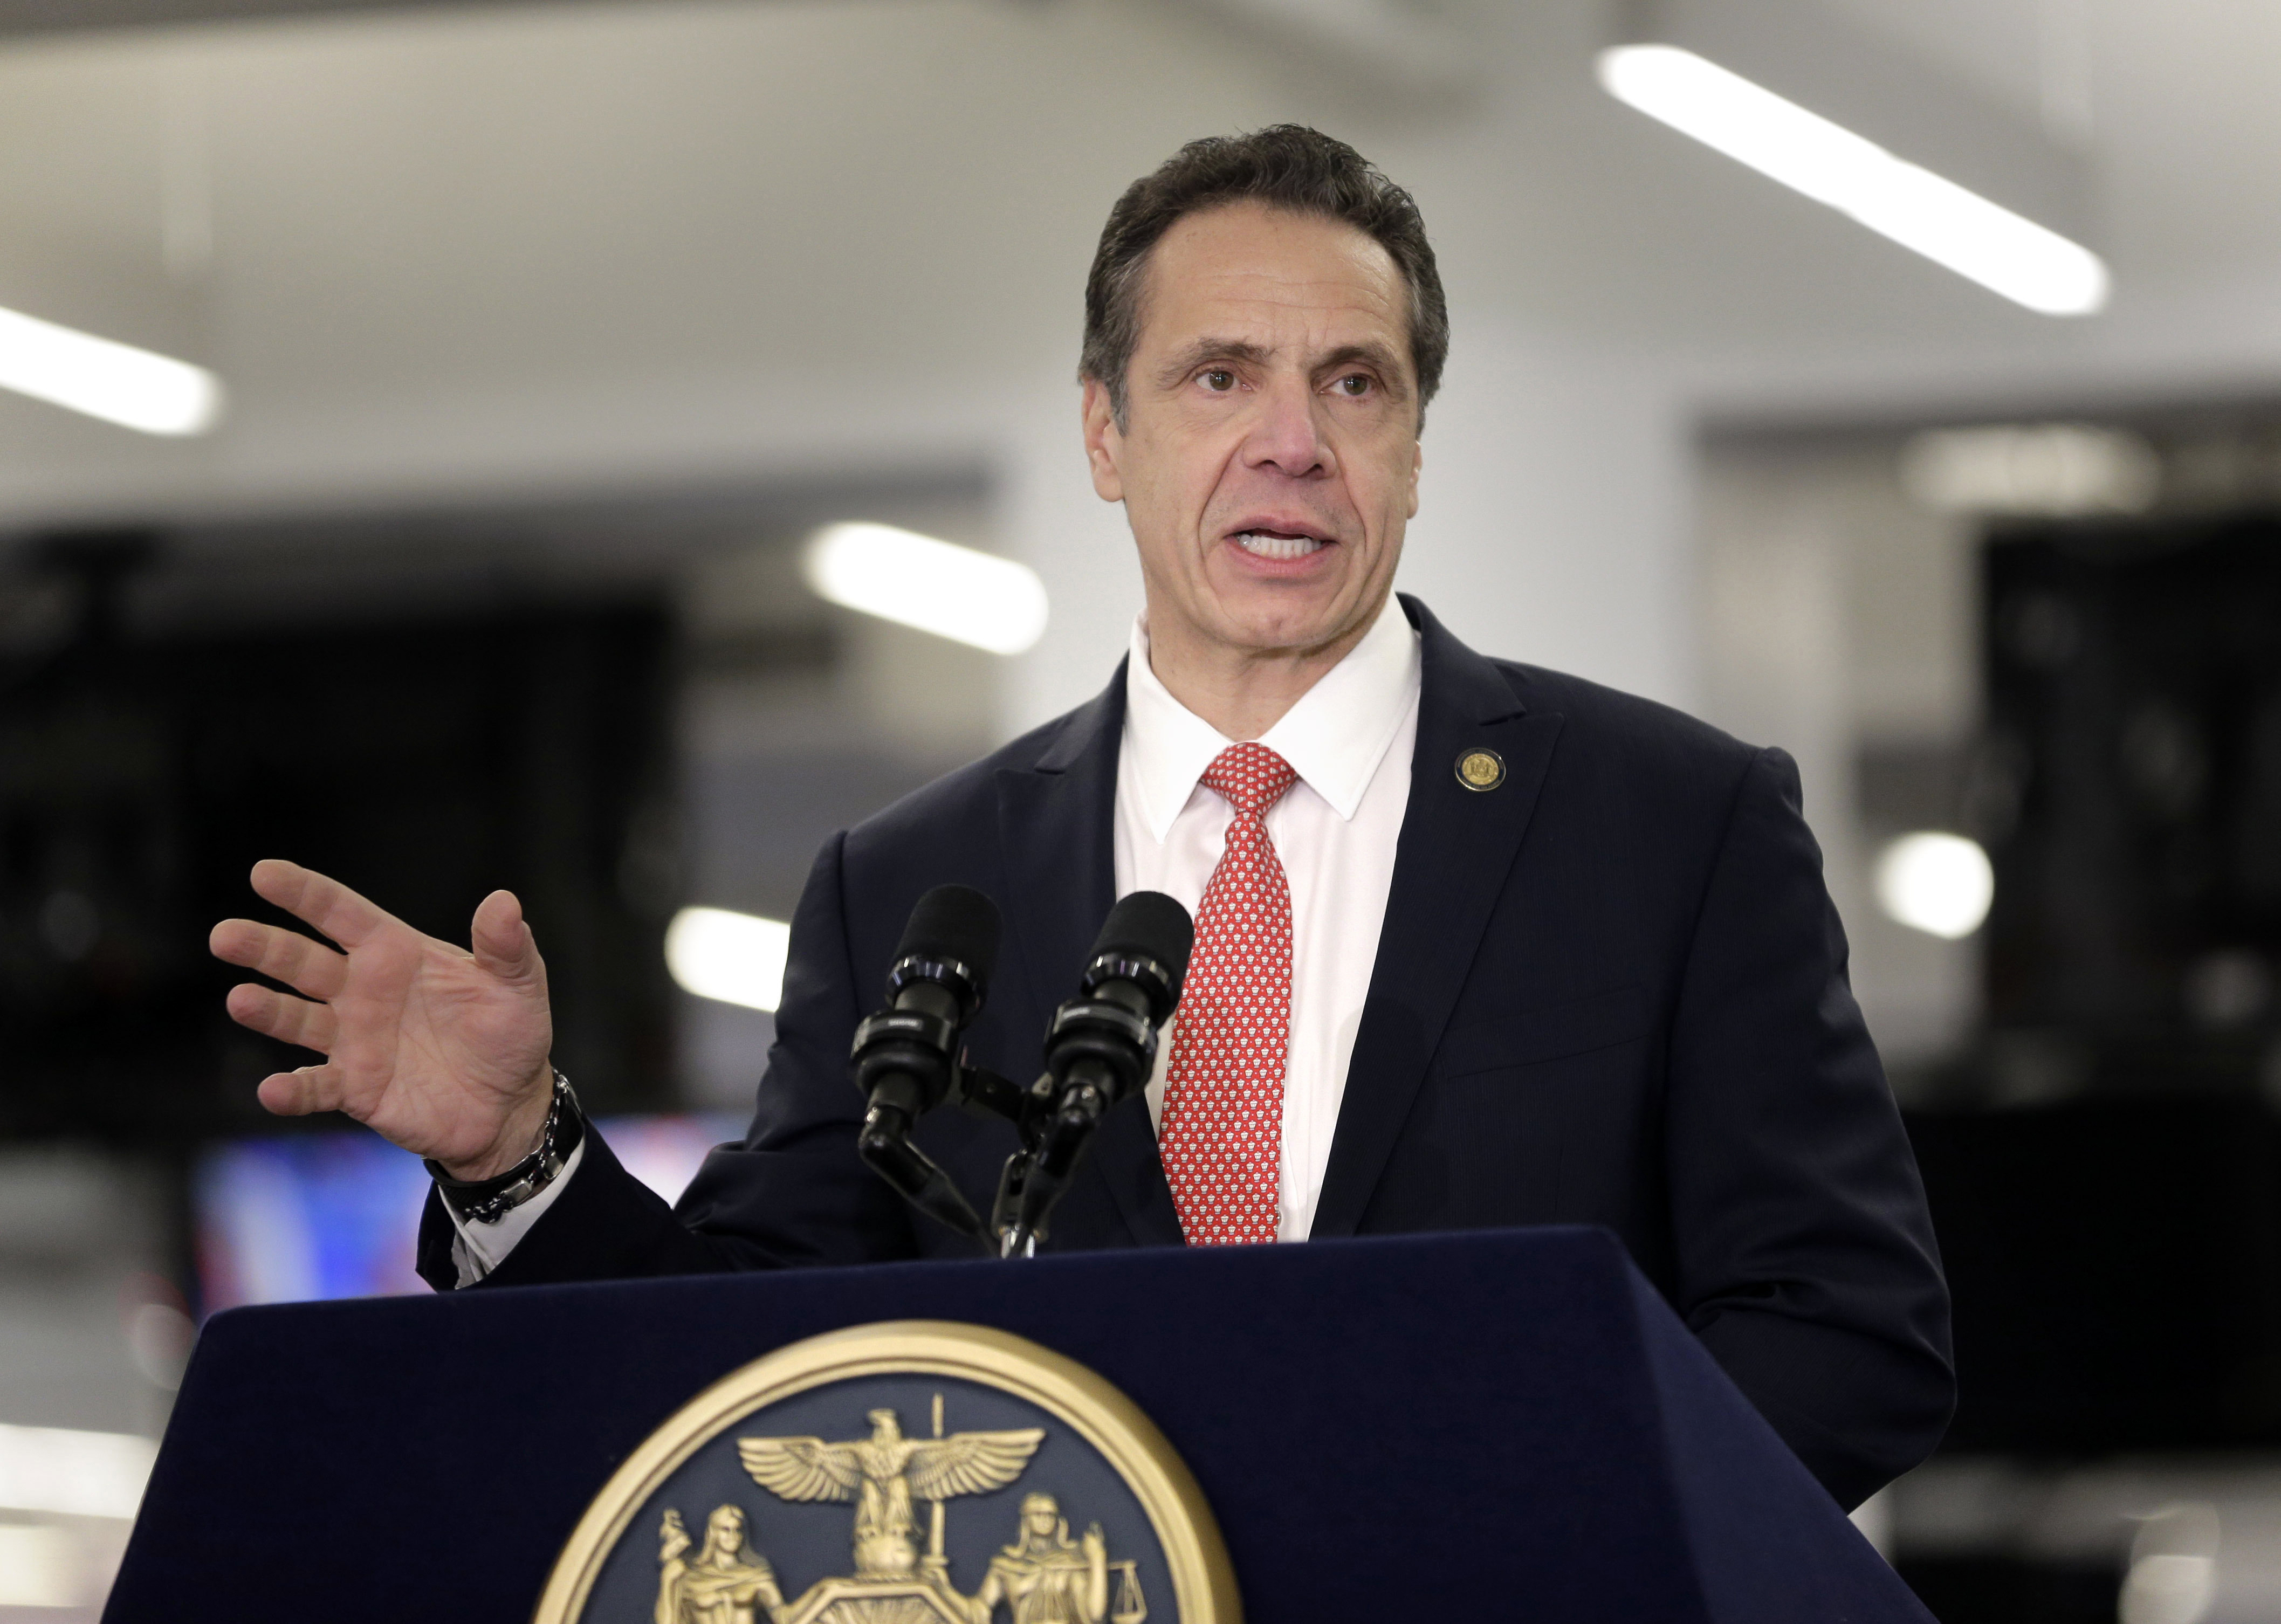 New York's Cuomo seeks tri-state marijuana legalization policy with Connecticut, New Jersey